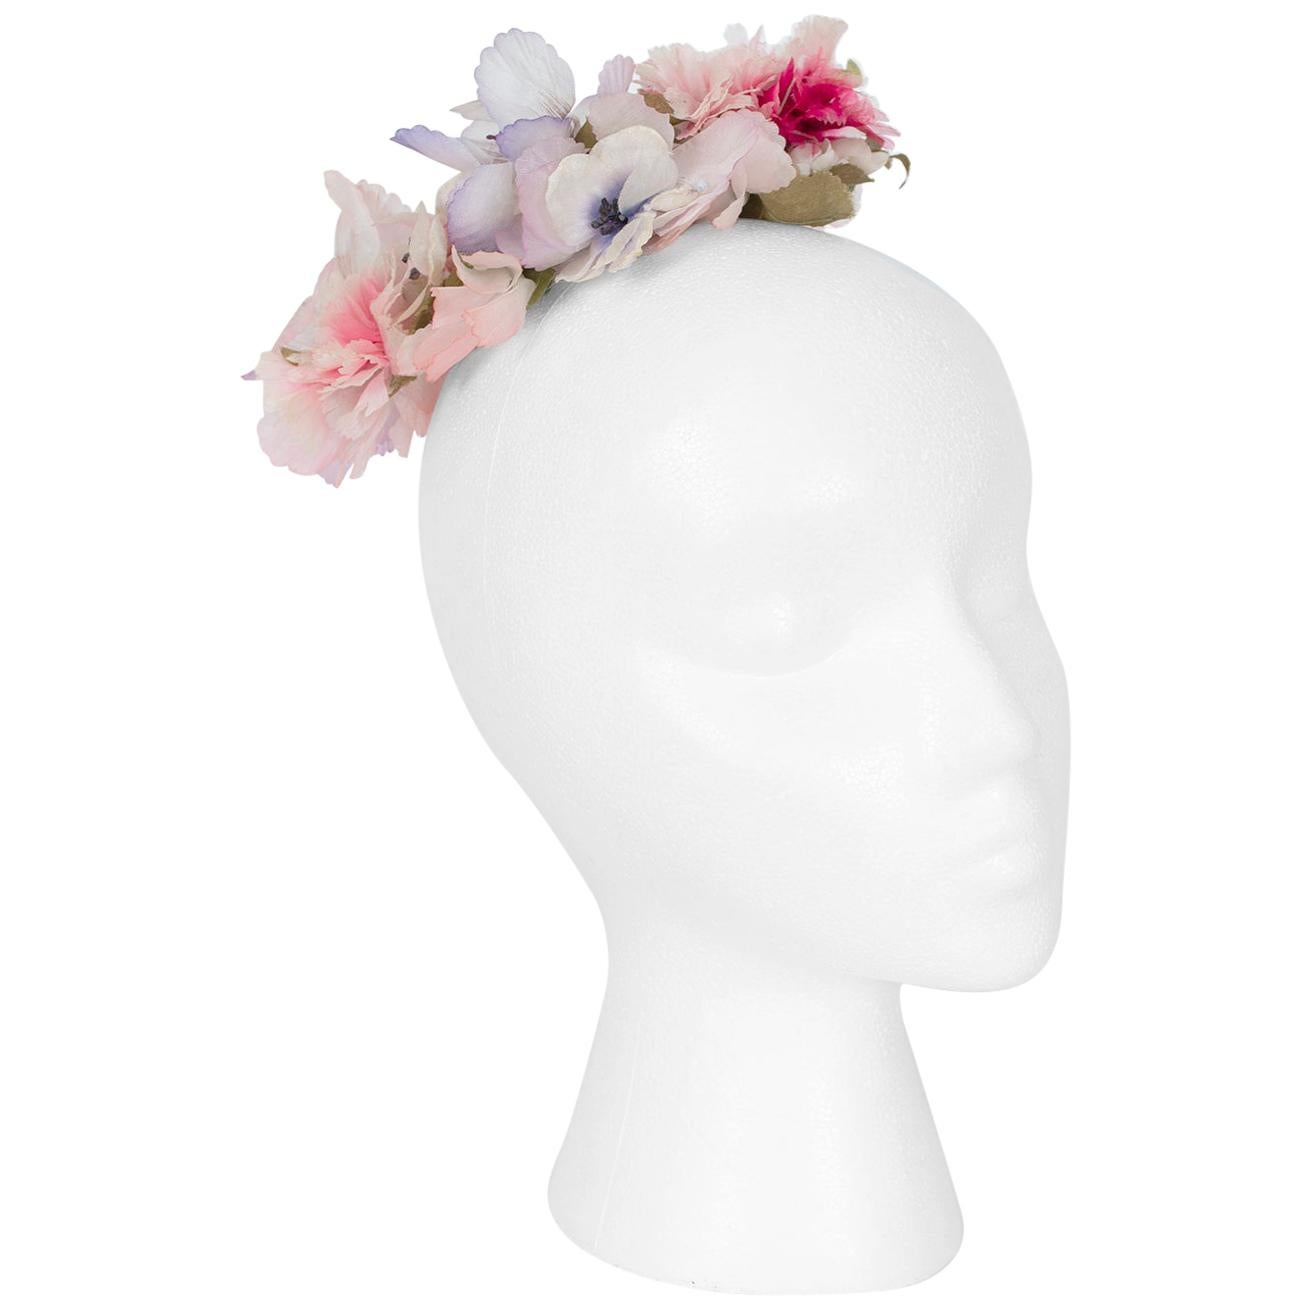 Pink Silk Floral Bridal Coronet Hair Garland Cocktail Hat – One Size, 1950s